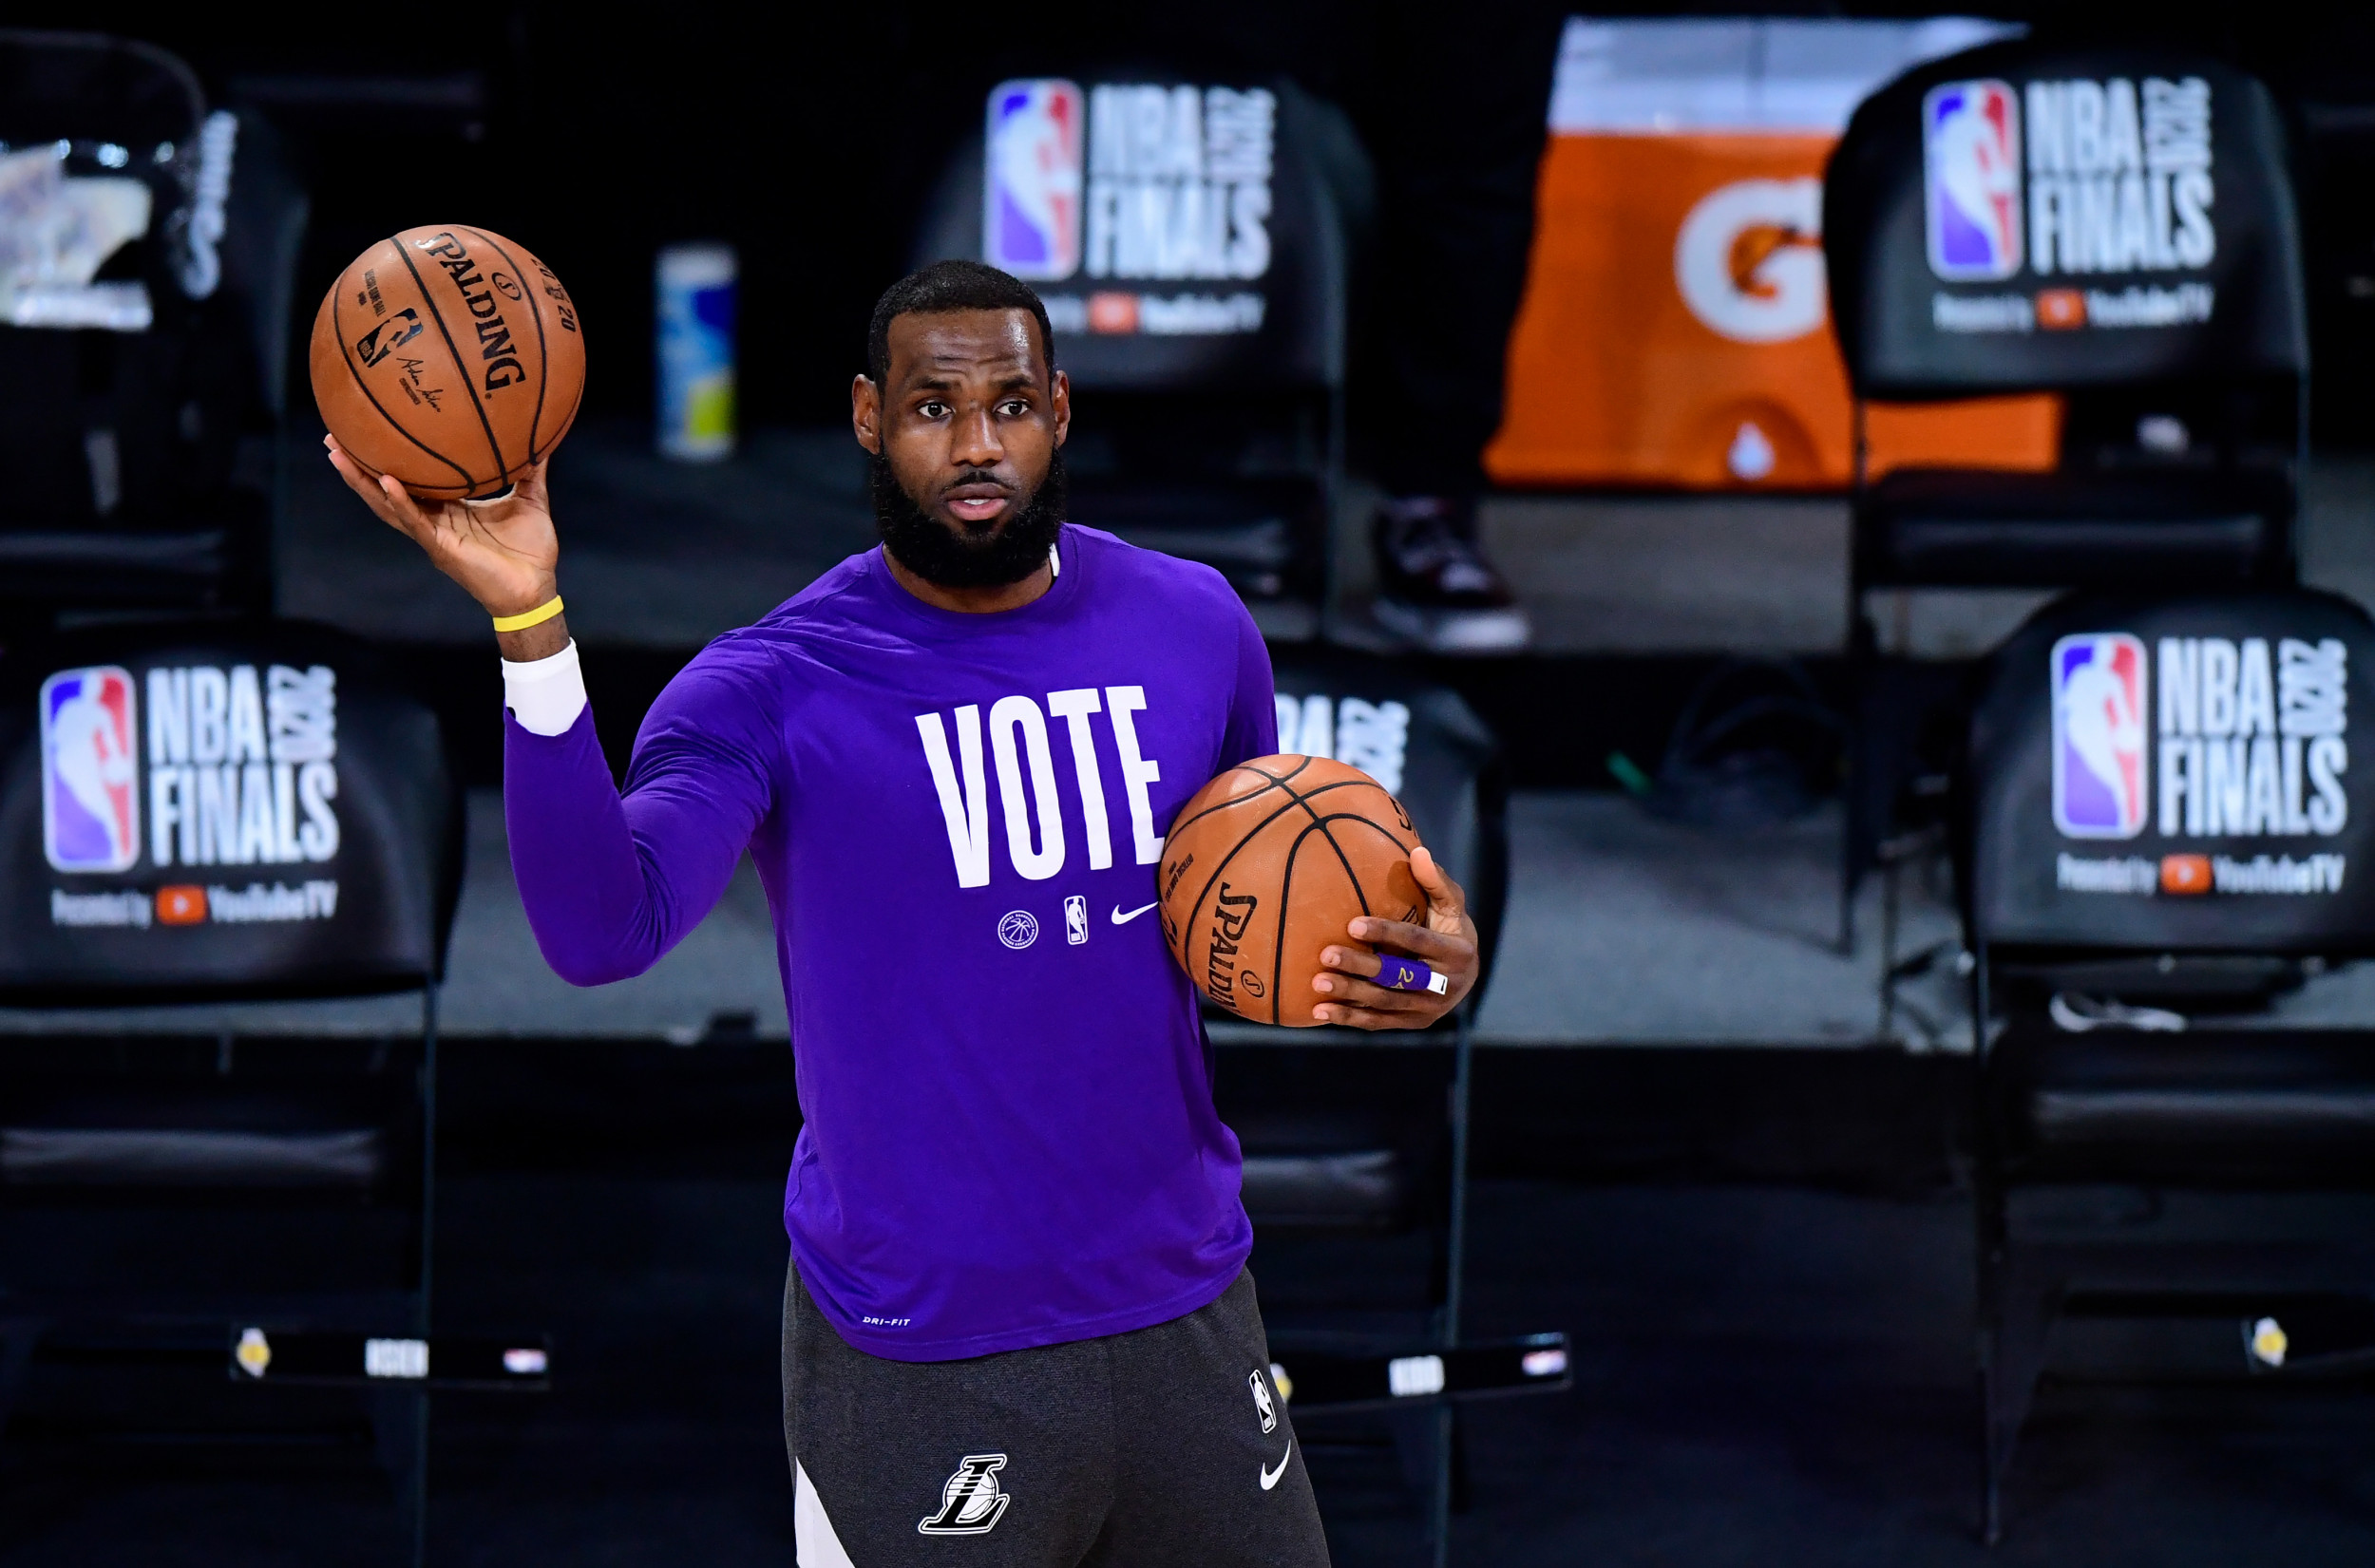 LeBron urges African Americans to vote as Trump gains with Black voters